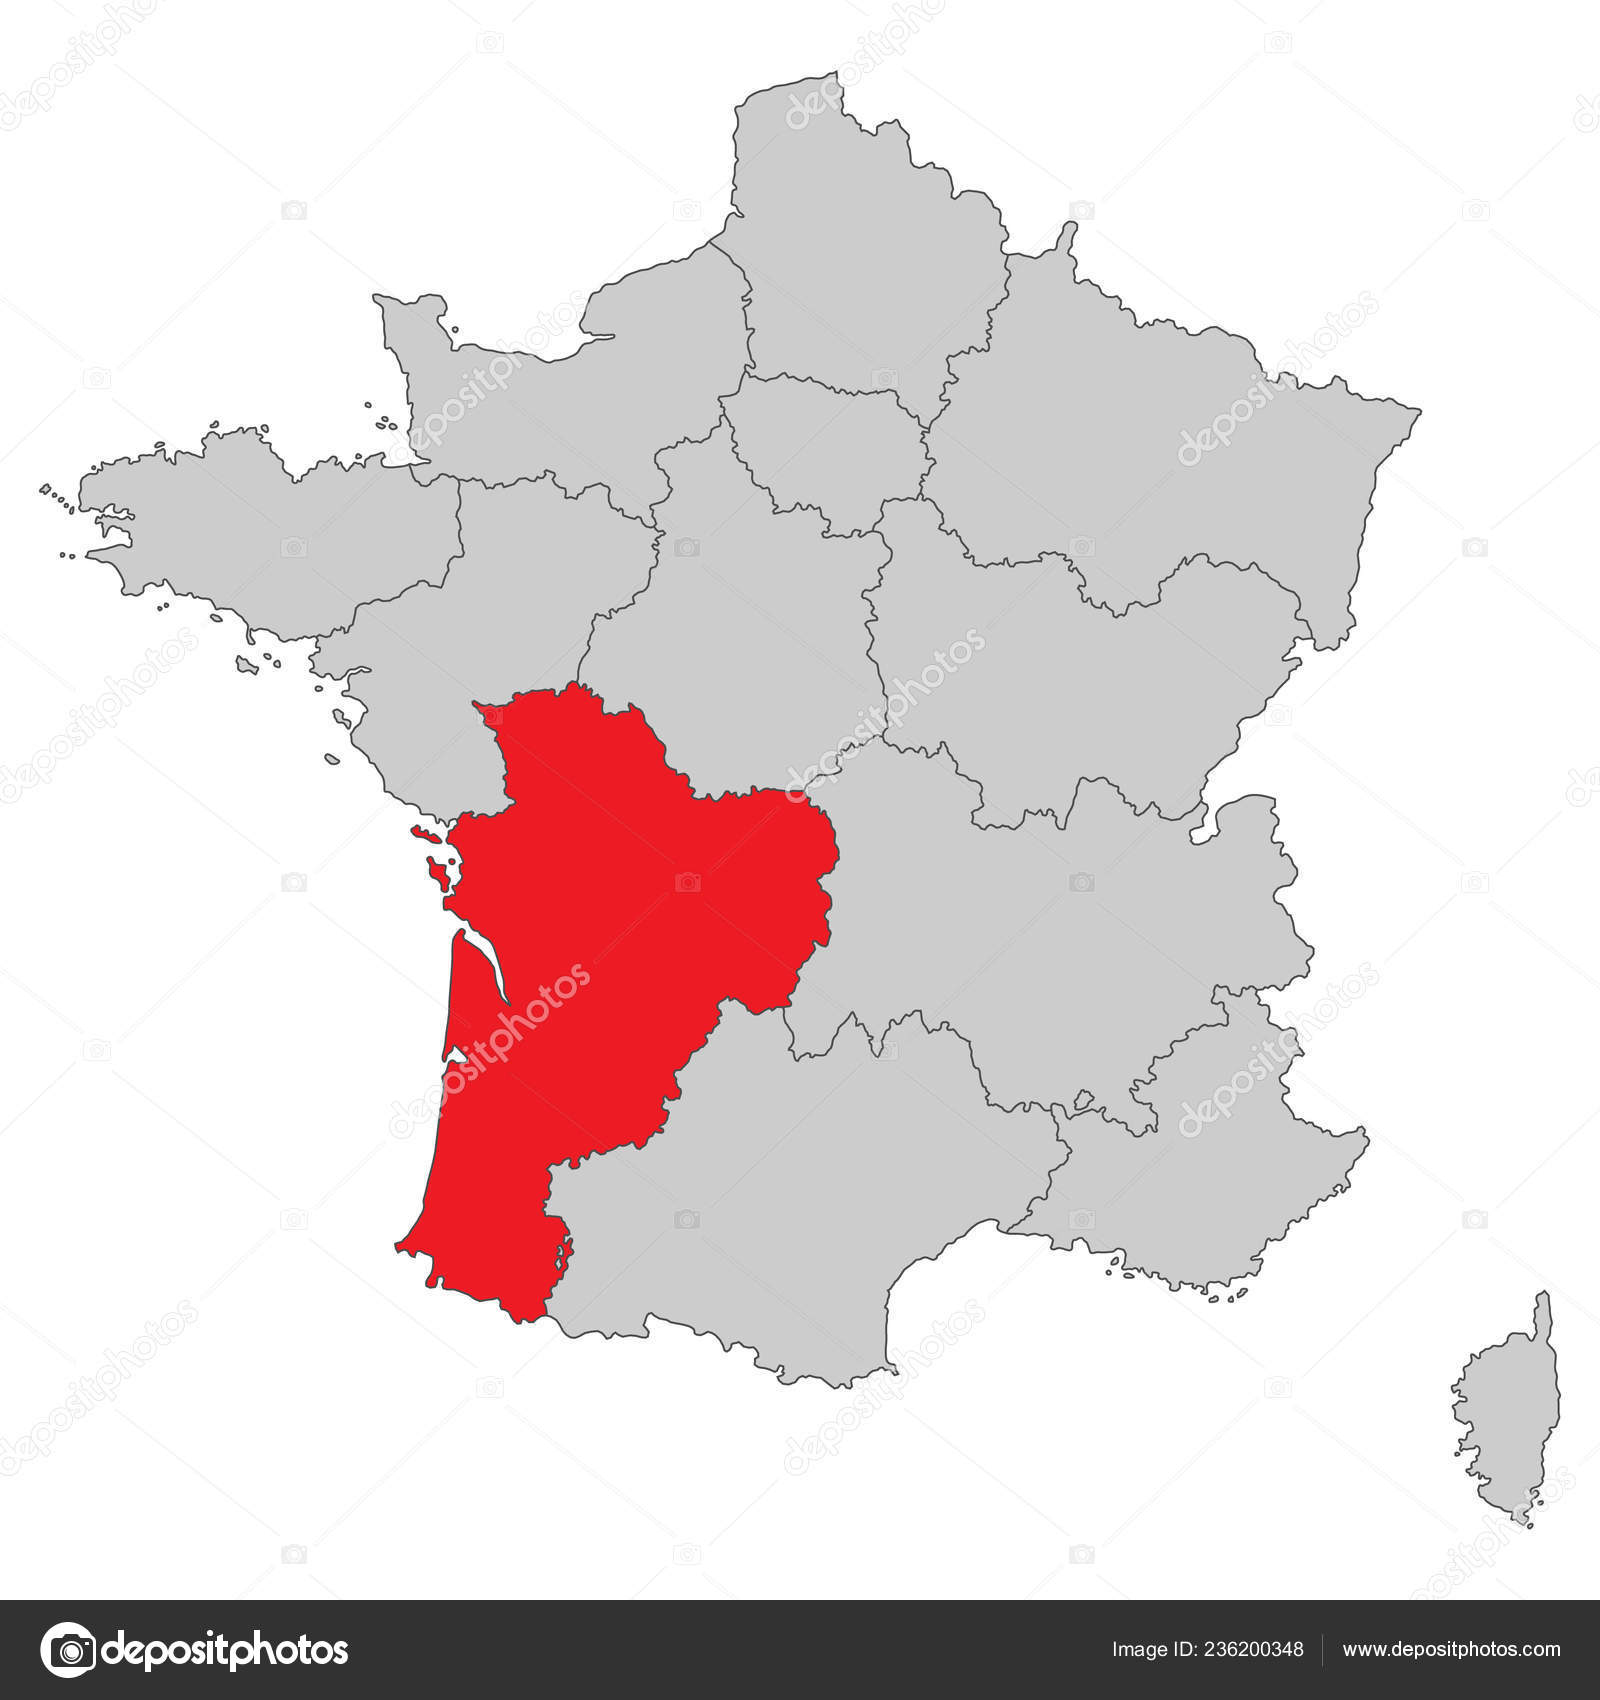 Map Of France Detailed.France Map France High Detailed Stock Vector C Ii Graphics 236200348